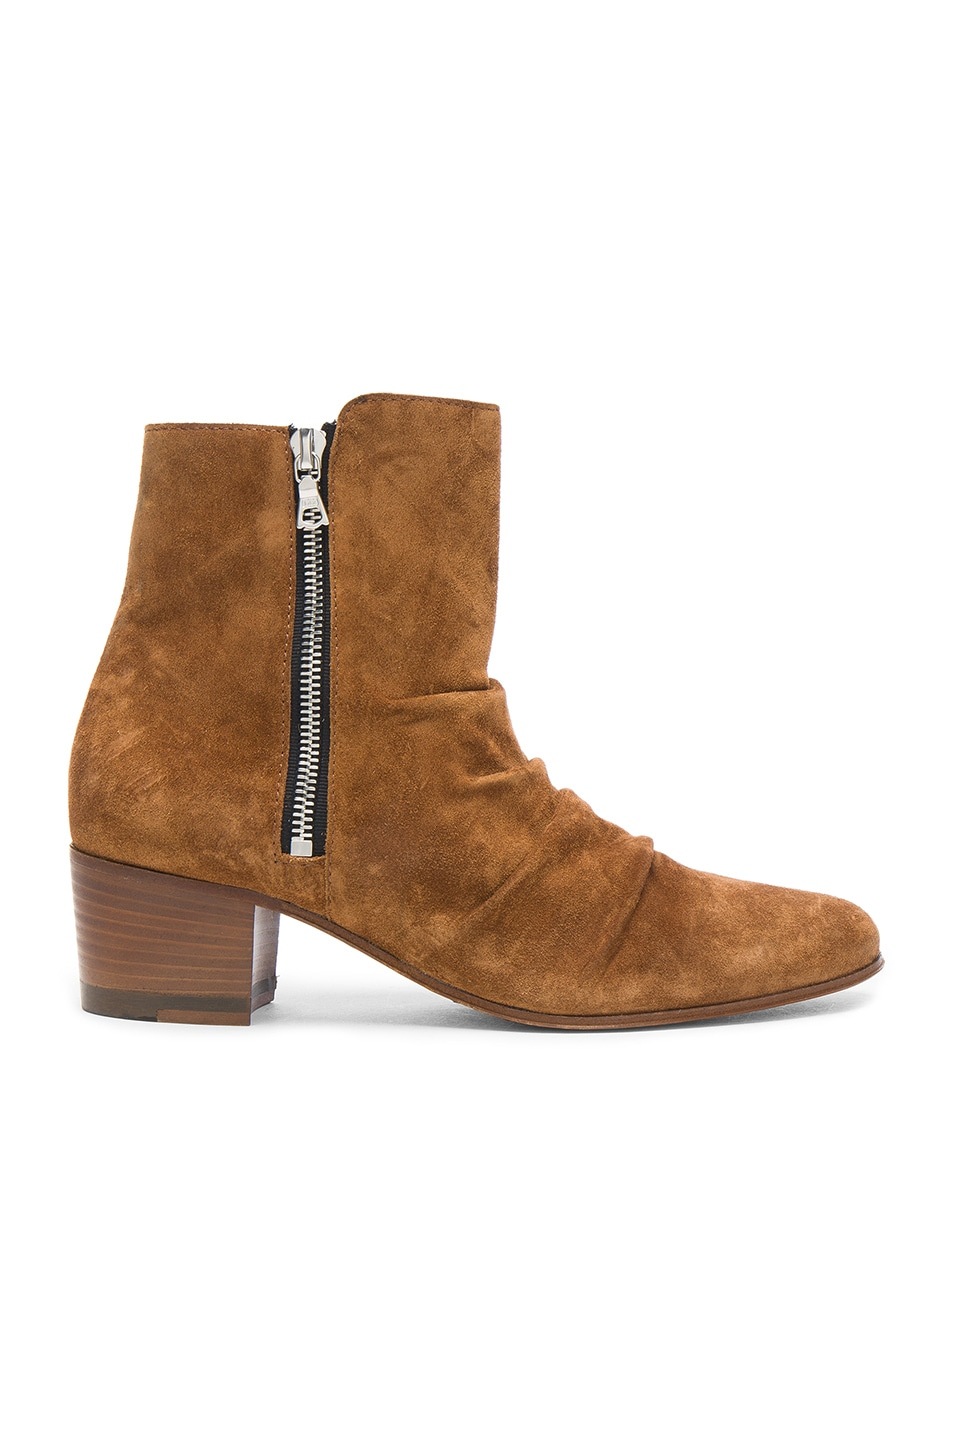 AMIRI Skinny Stack Suede Ankle Boots - Brown Size 9